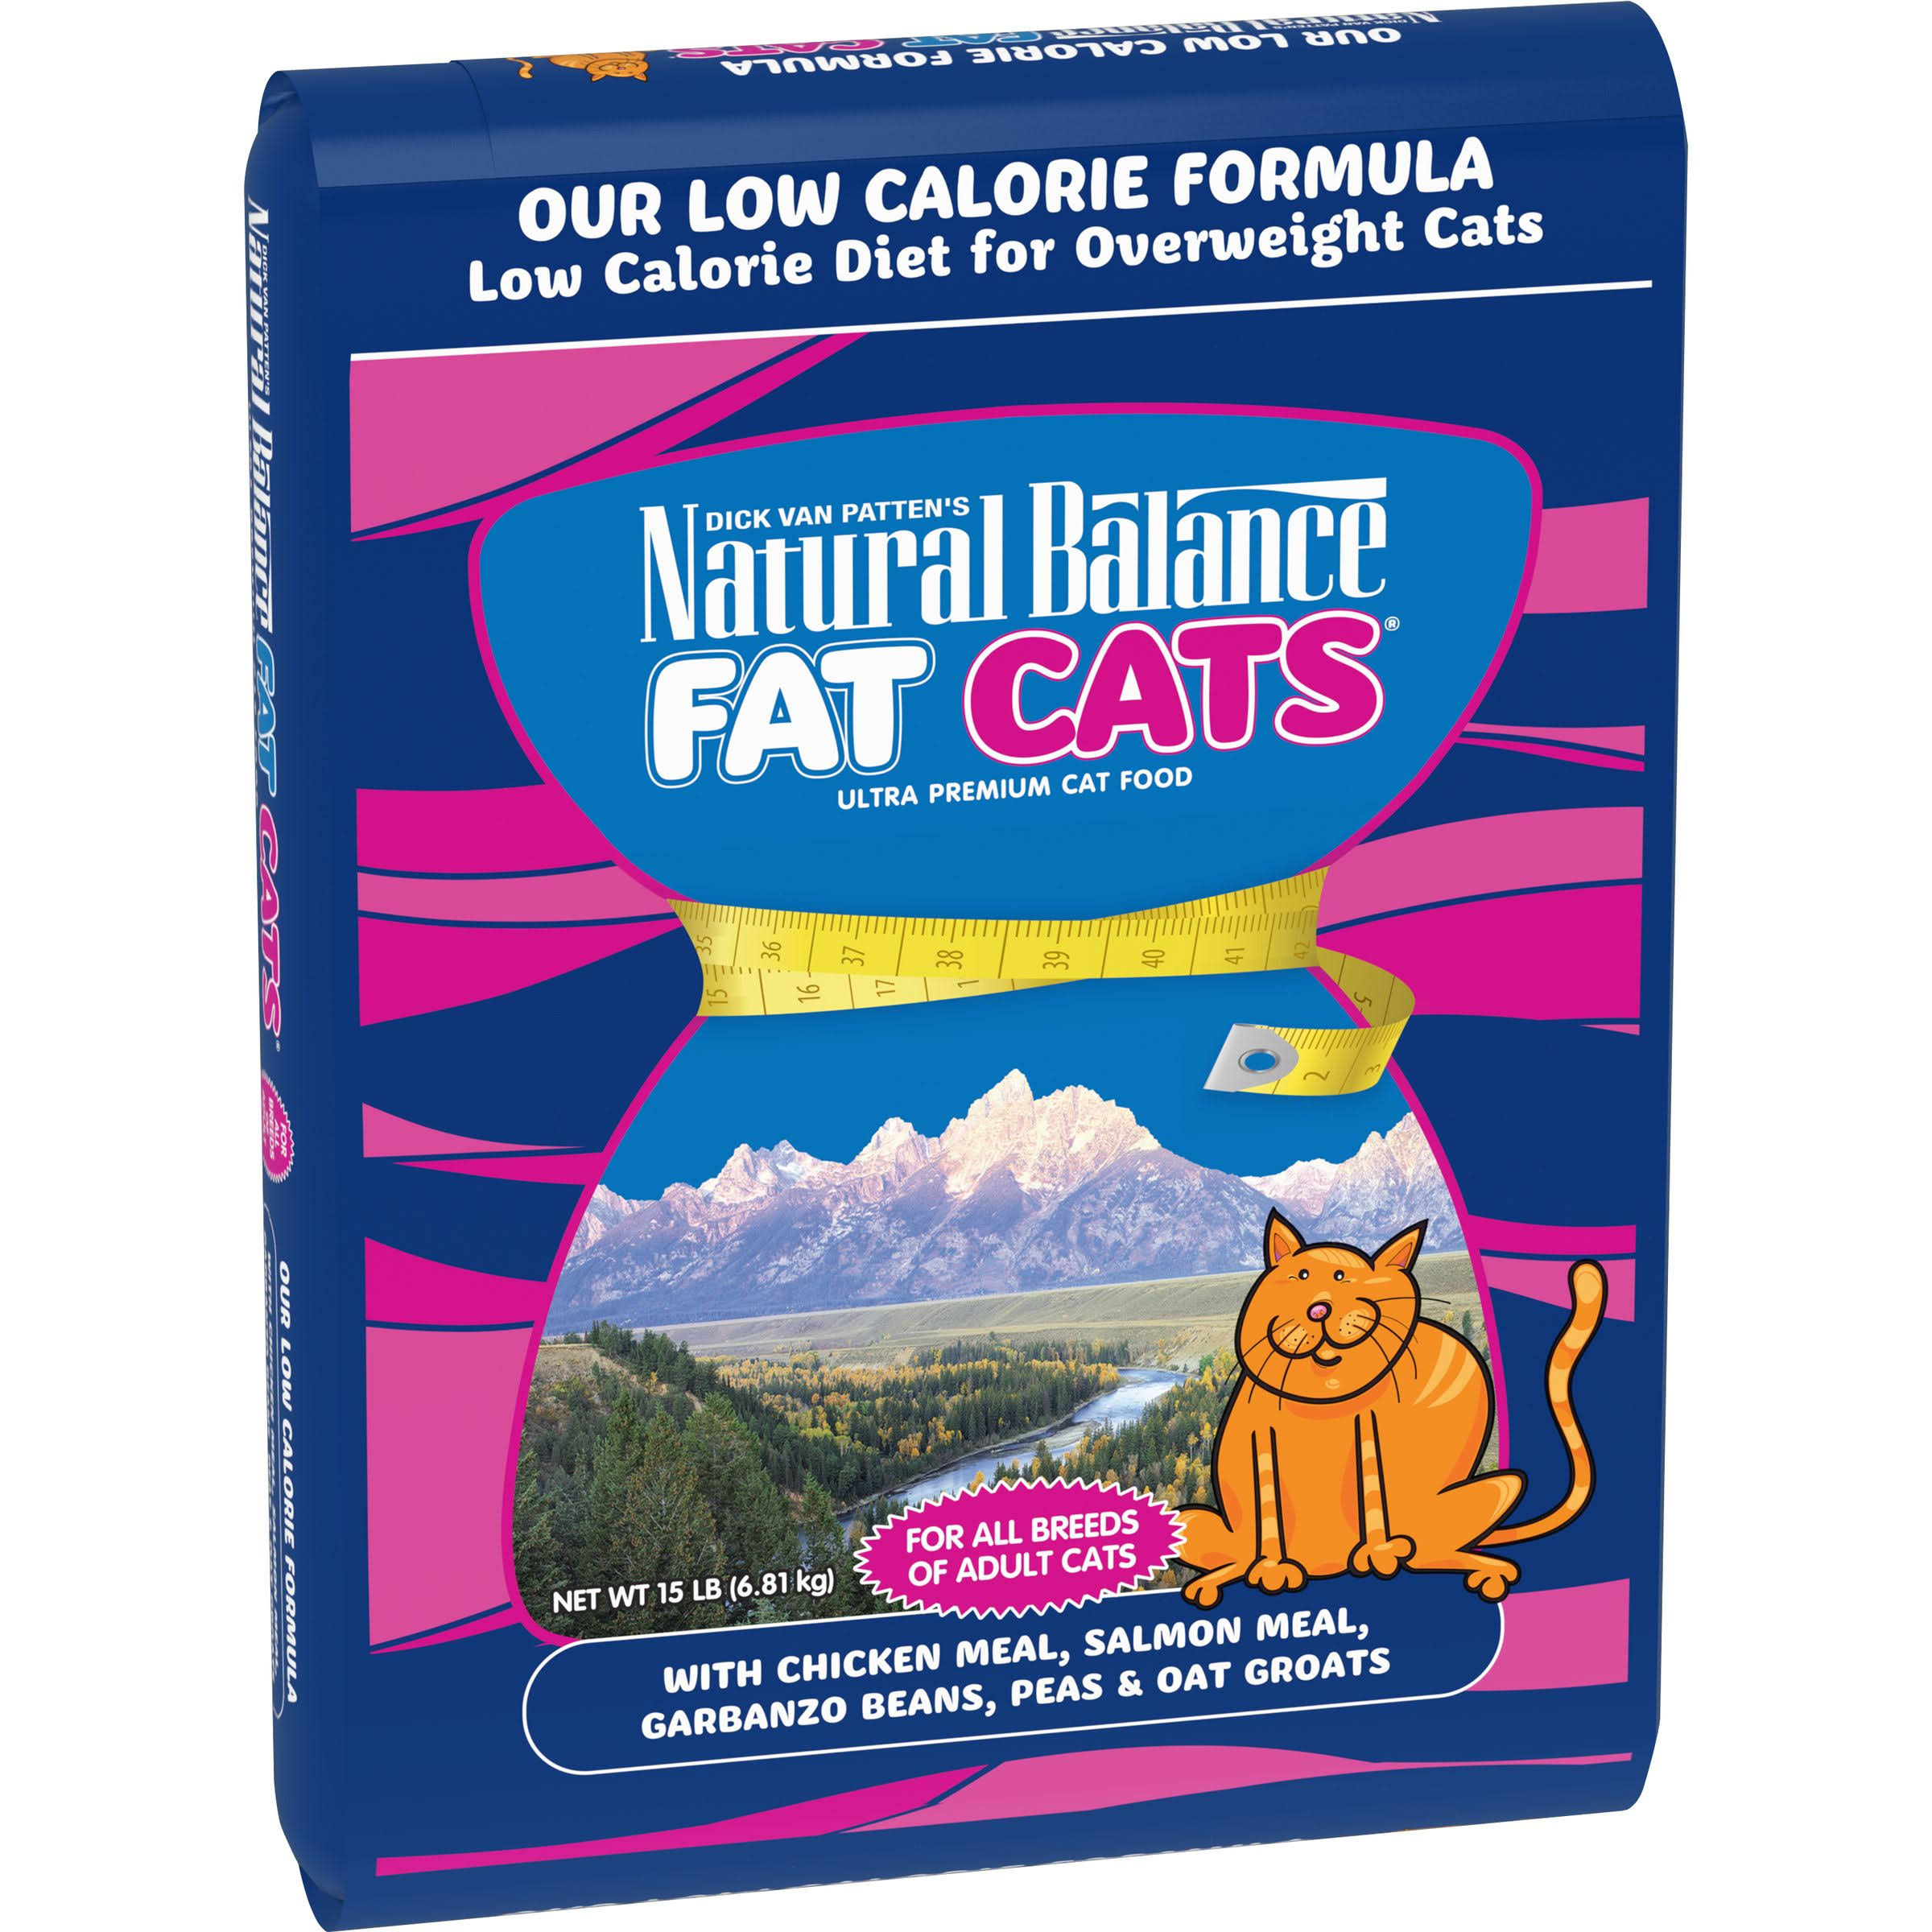 Natural Balance Fat Cats Low Calorie Dry Cat Food - Chicken & Salmon Formula, 15lb